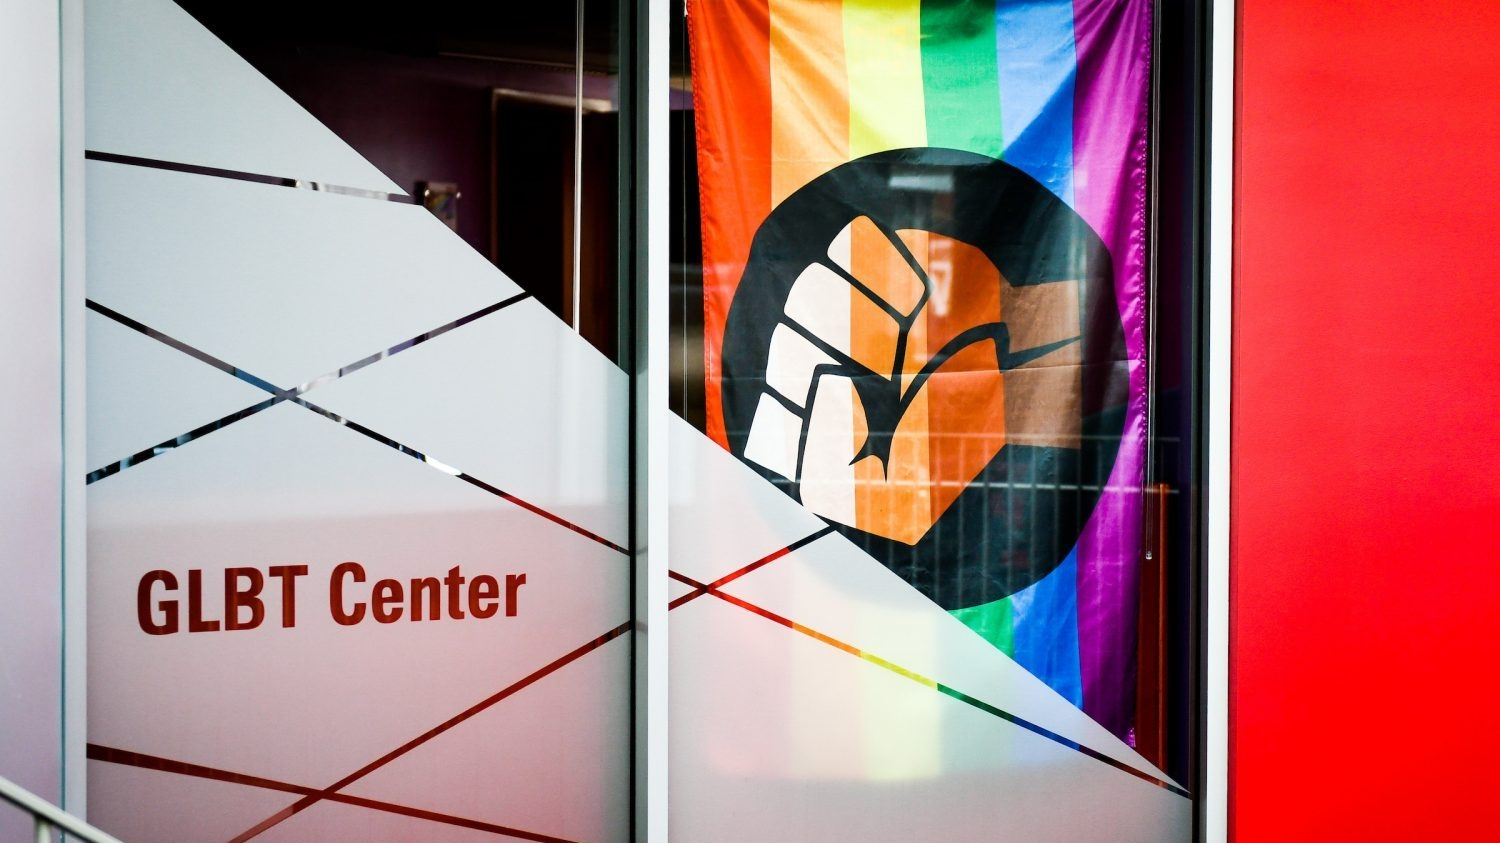 exterior shot of the GLBT center doors with the pride flag with raised fist hanging